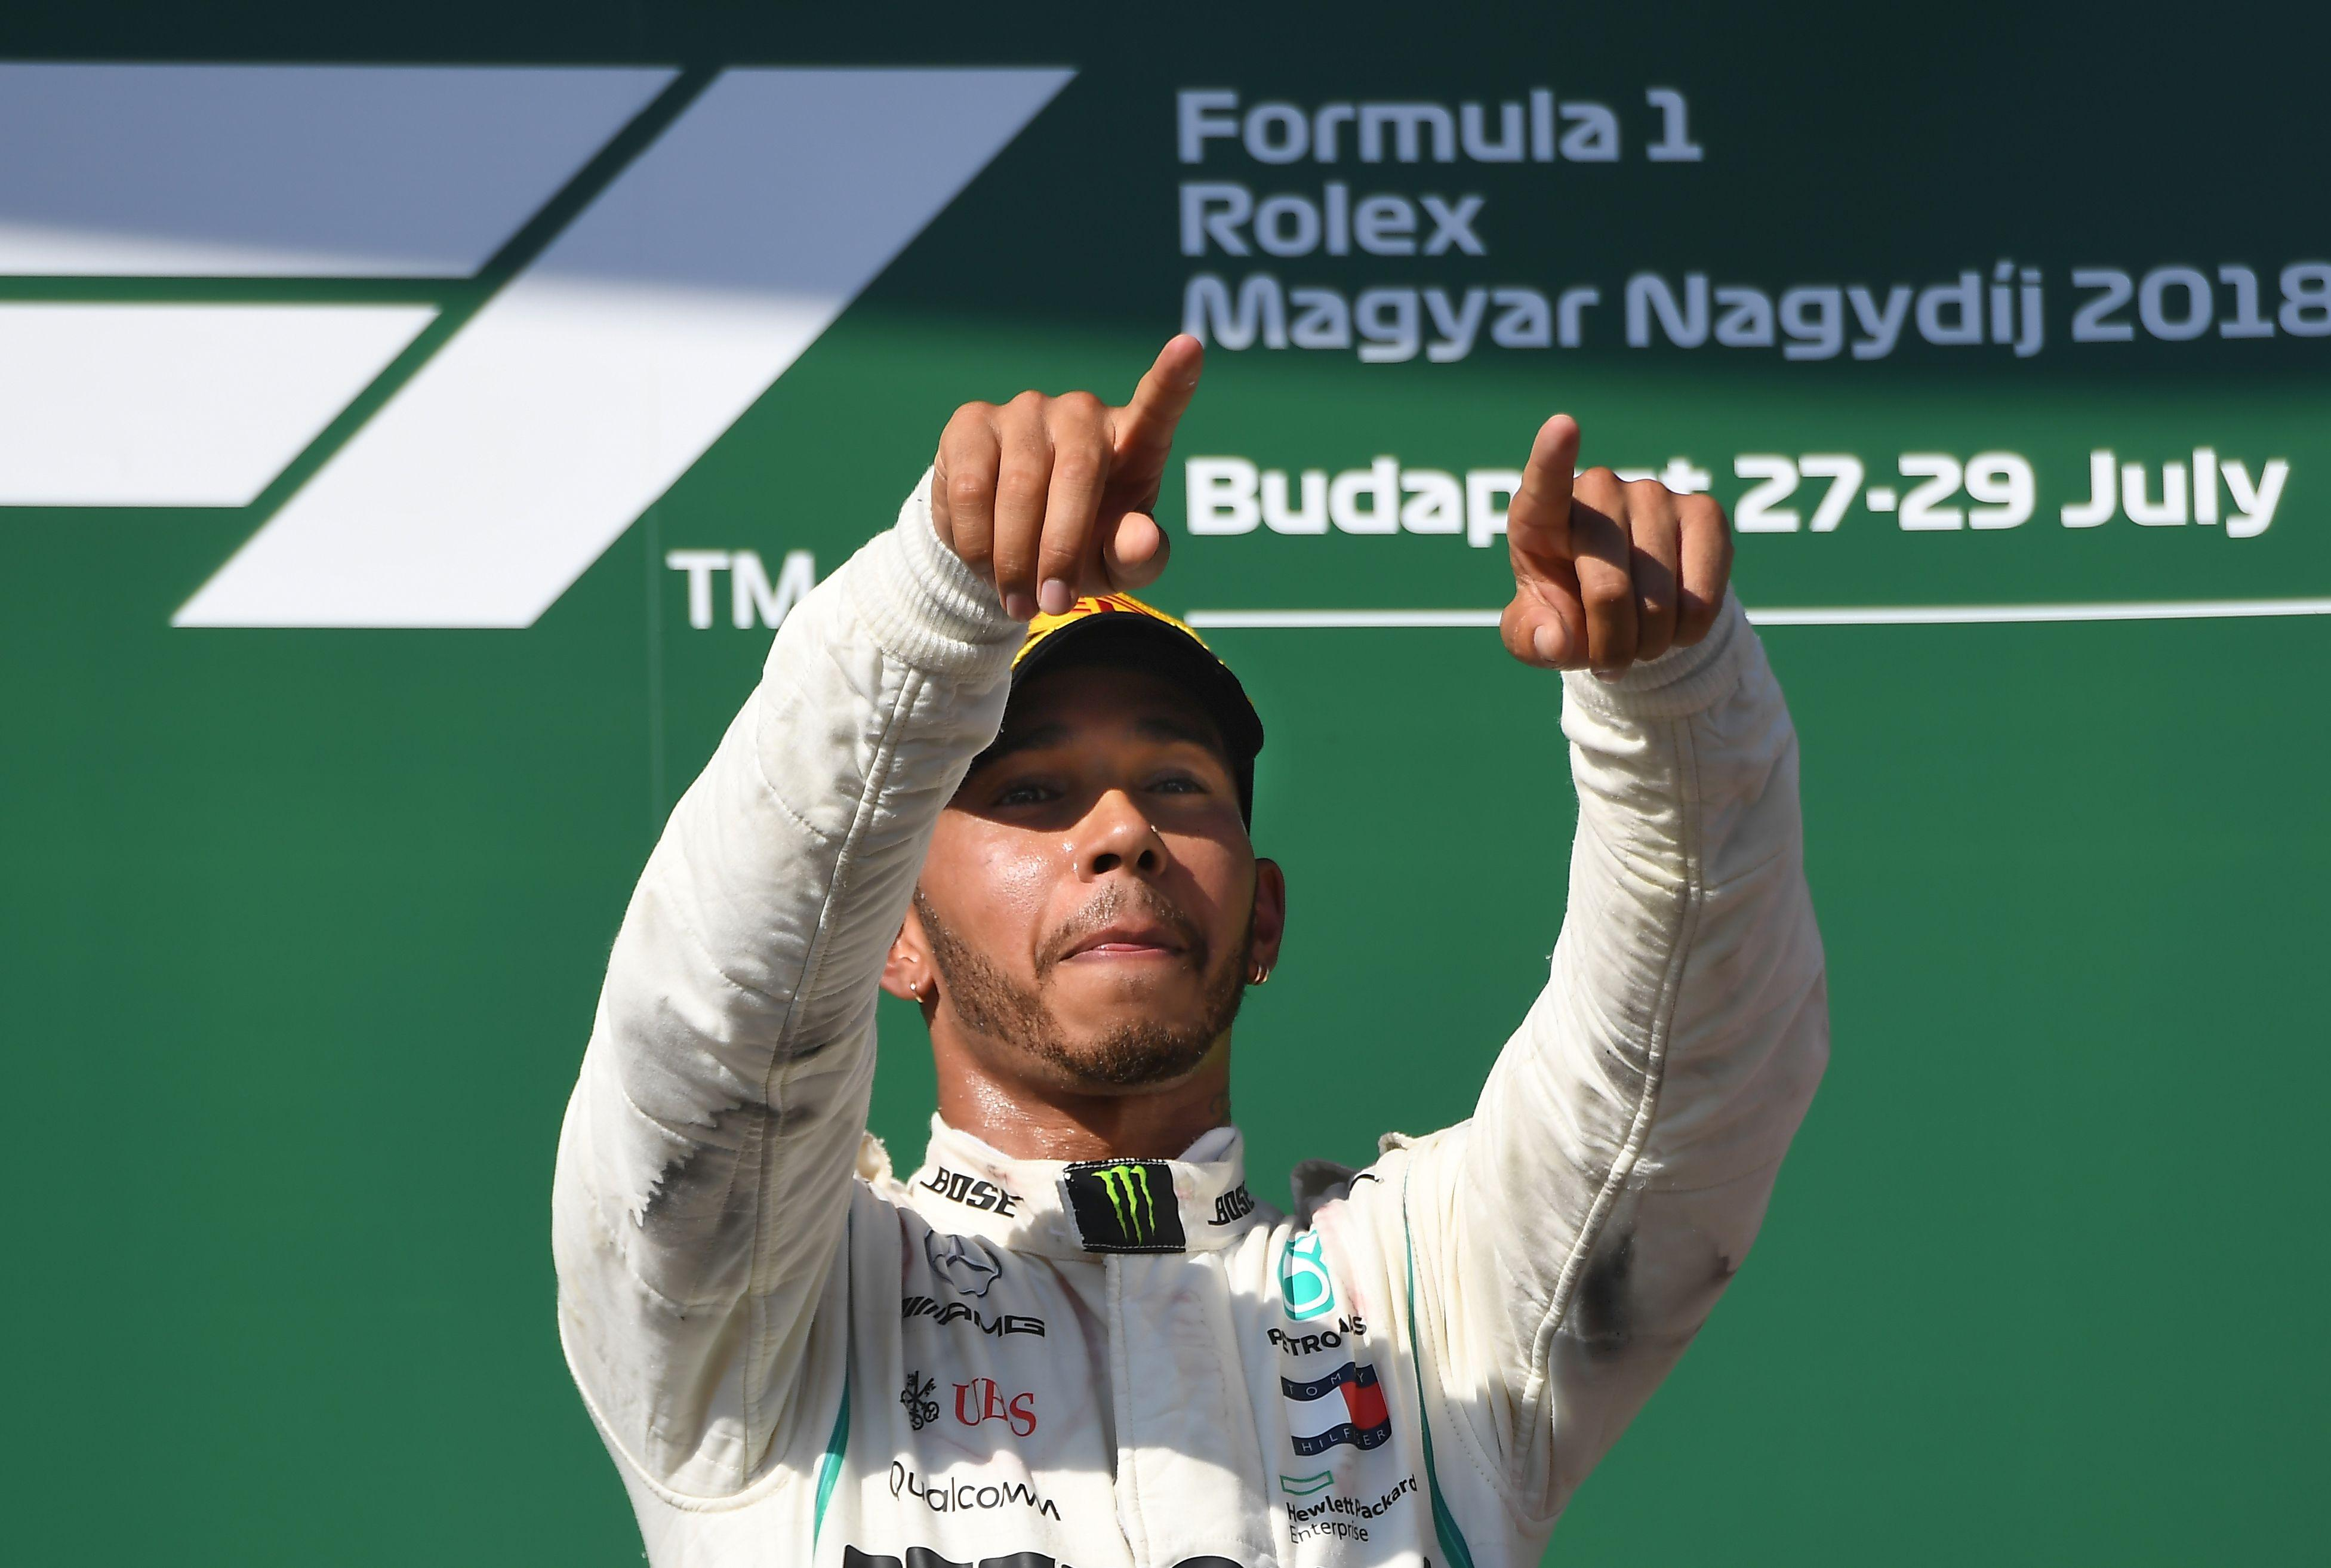 Hamilton now has a 24 point lead over Ferrari's Sebastian Vettel in the title race